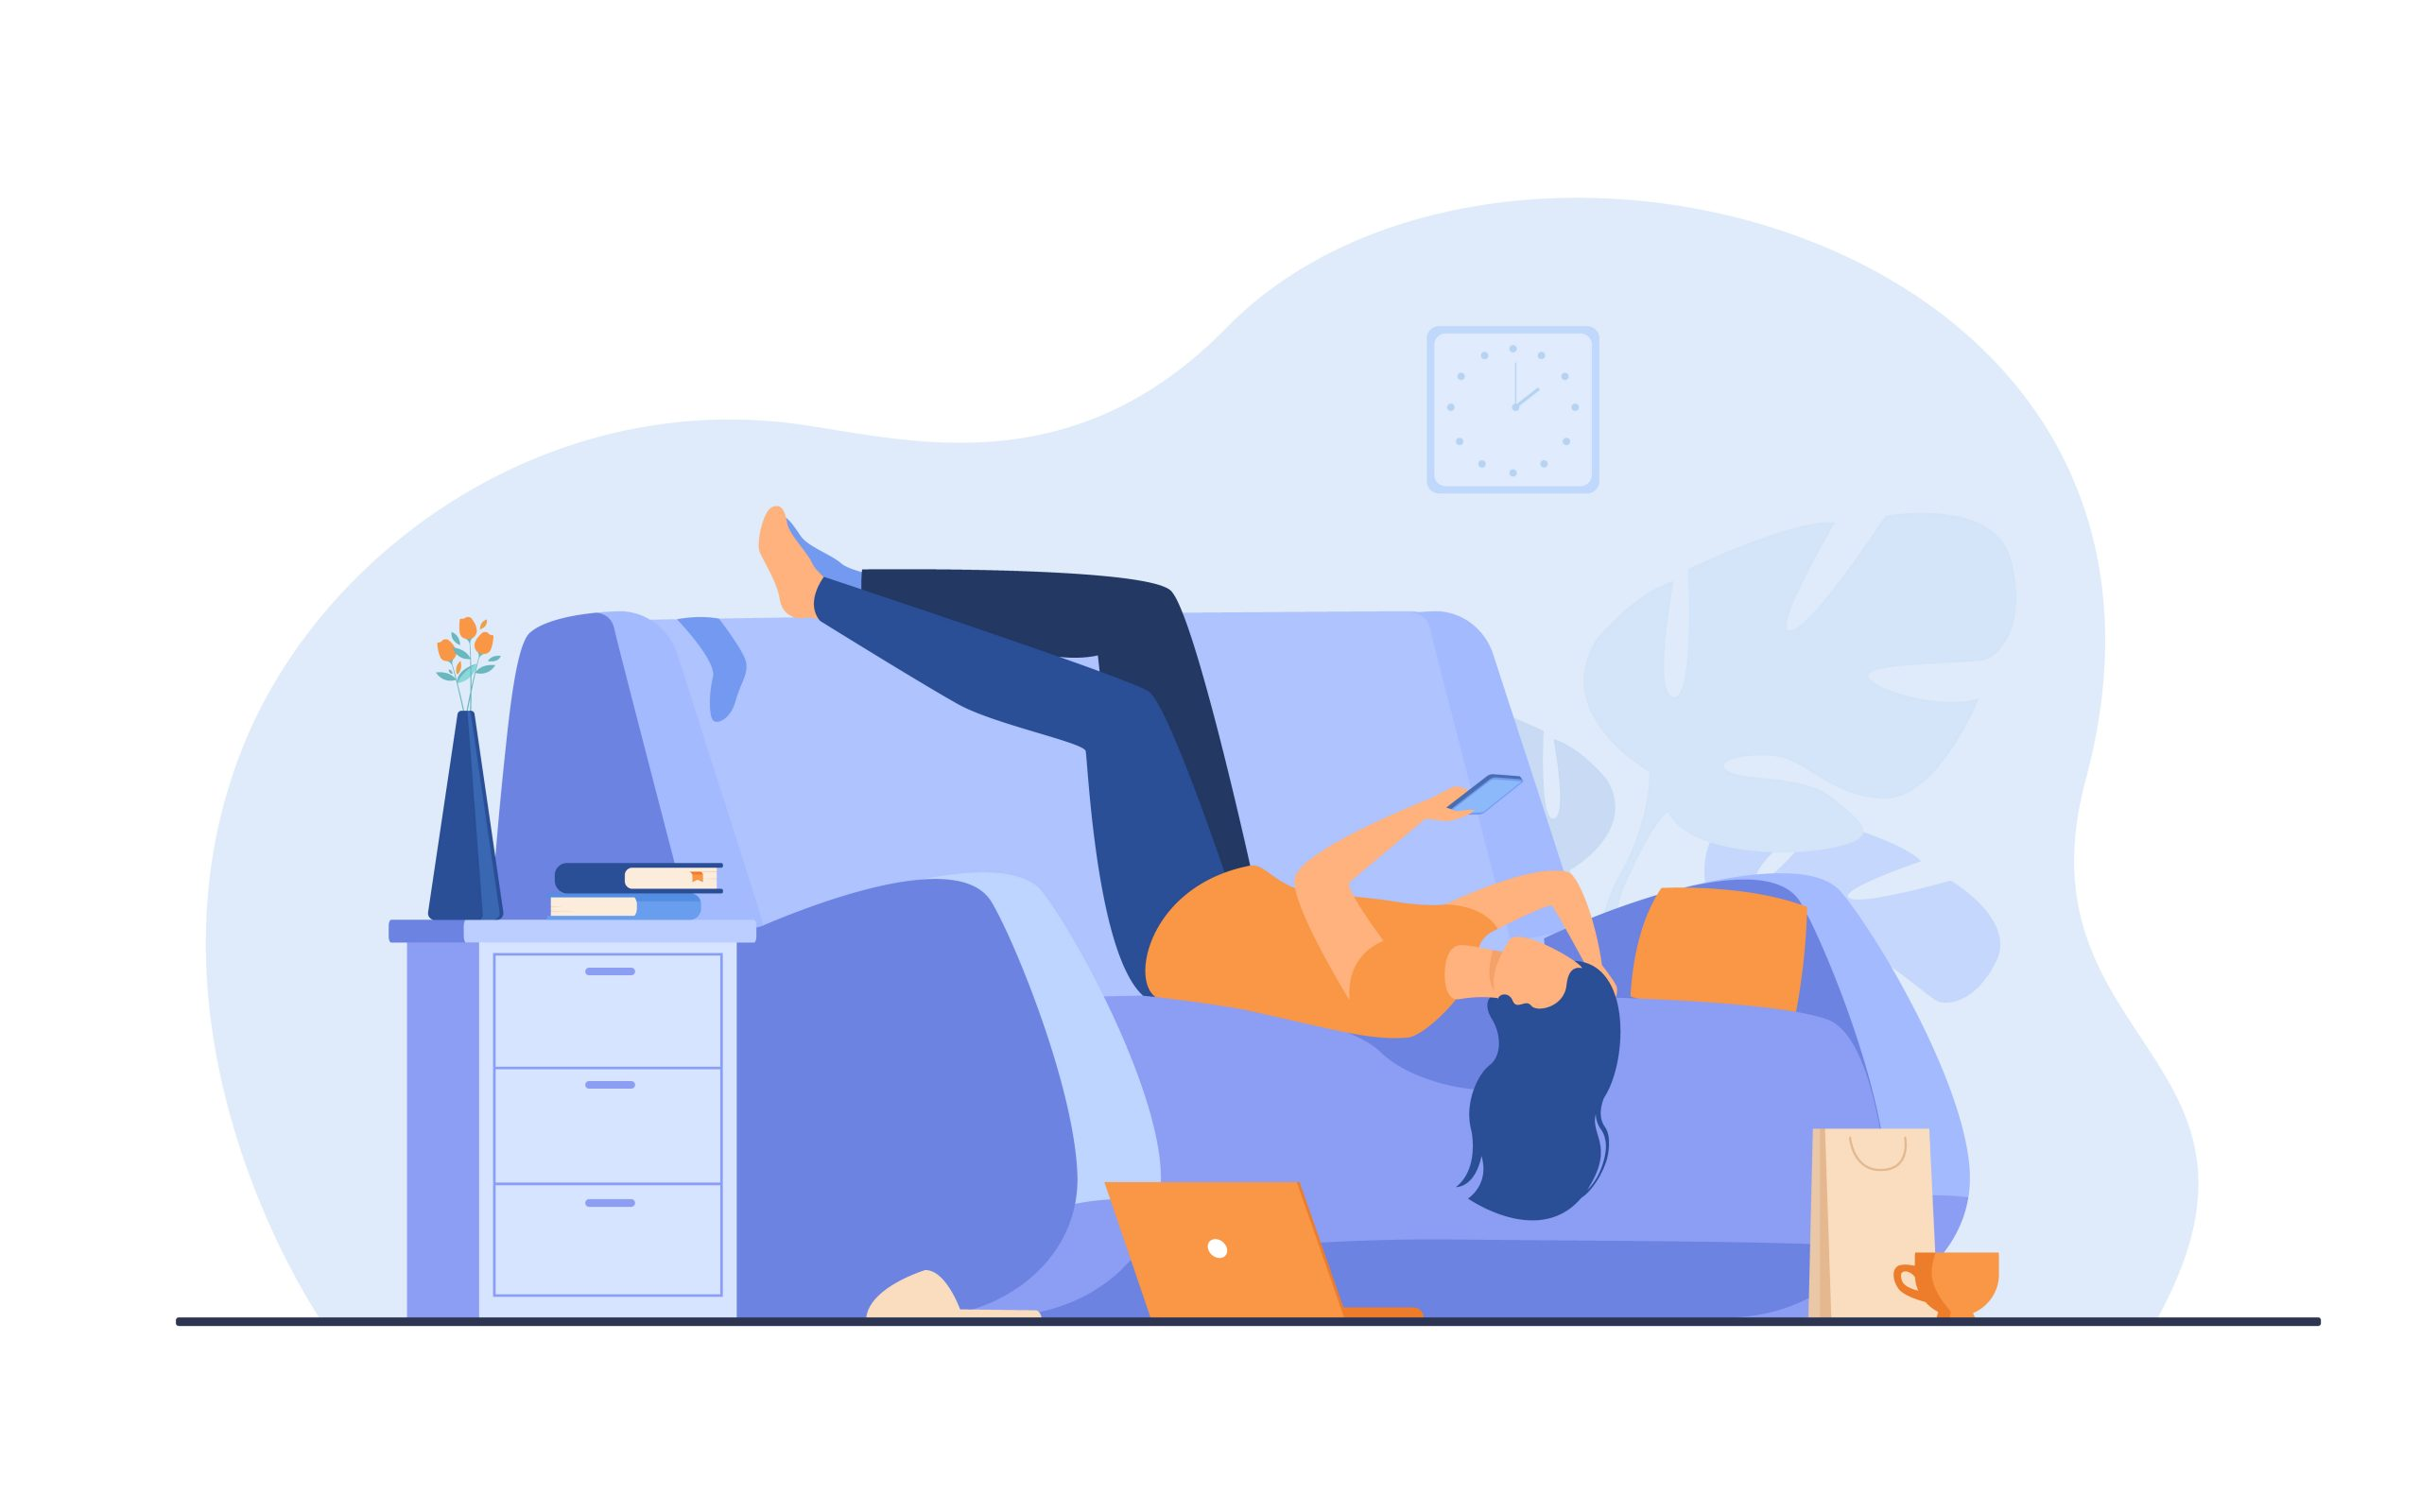 Lazy depressed woman resting in couch with smartphone after making mess at home. Vector illustration for depression, addiction, apathy, fatigue concept